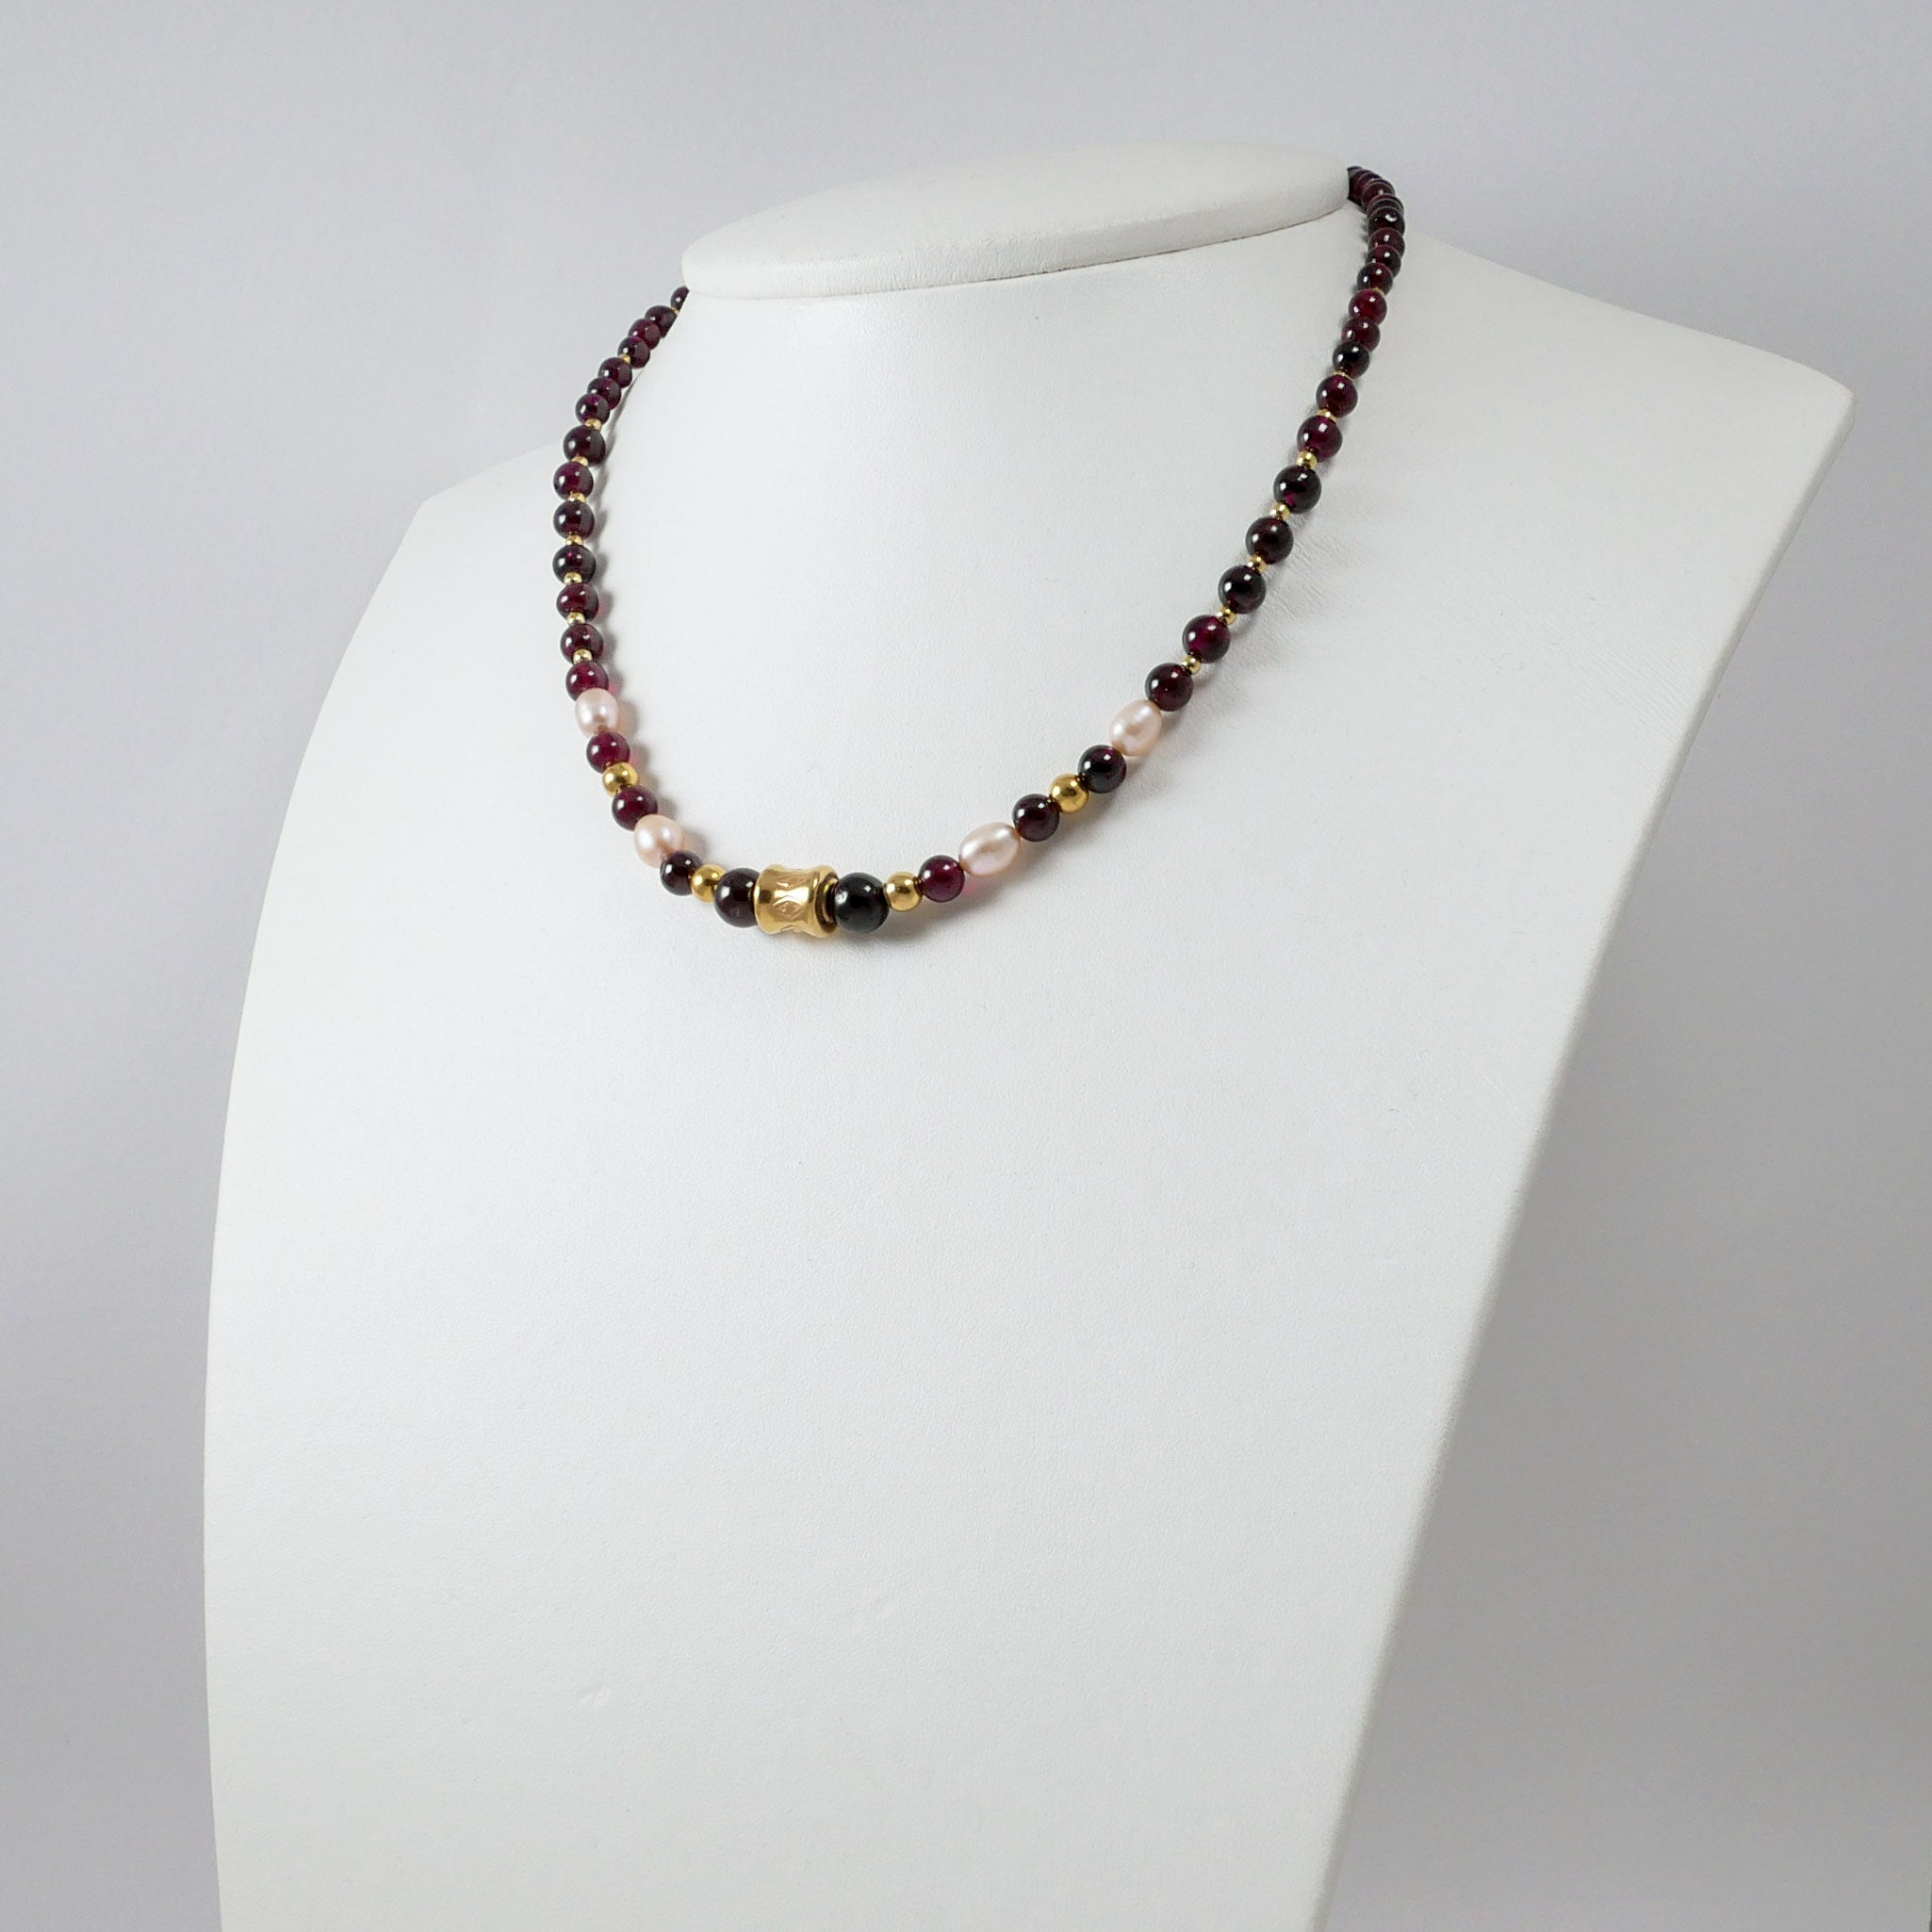 Garnets, Pearls & Gold Plated Silver Necklace (II)